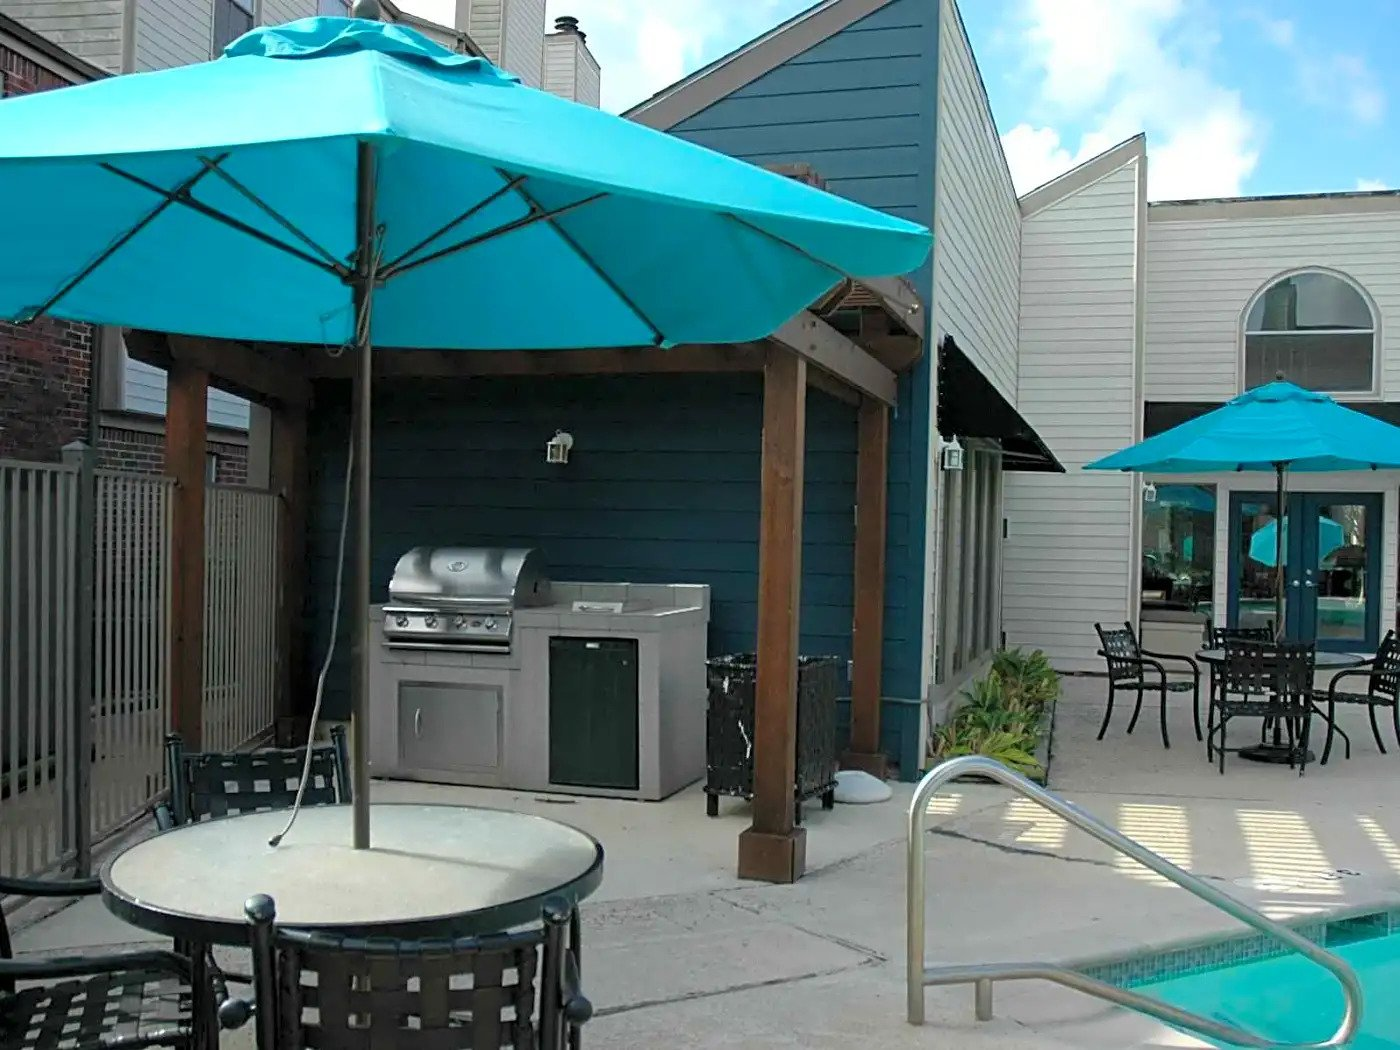 Outdoor Grill at Briar Park Apartments in Houston, Texas